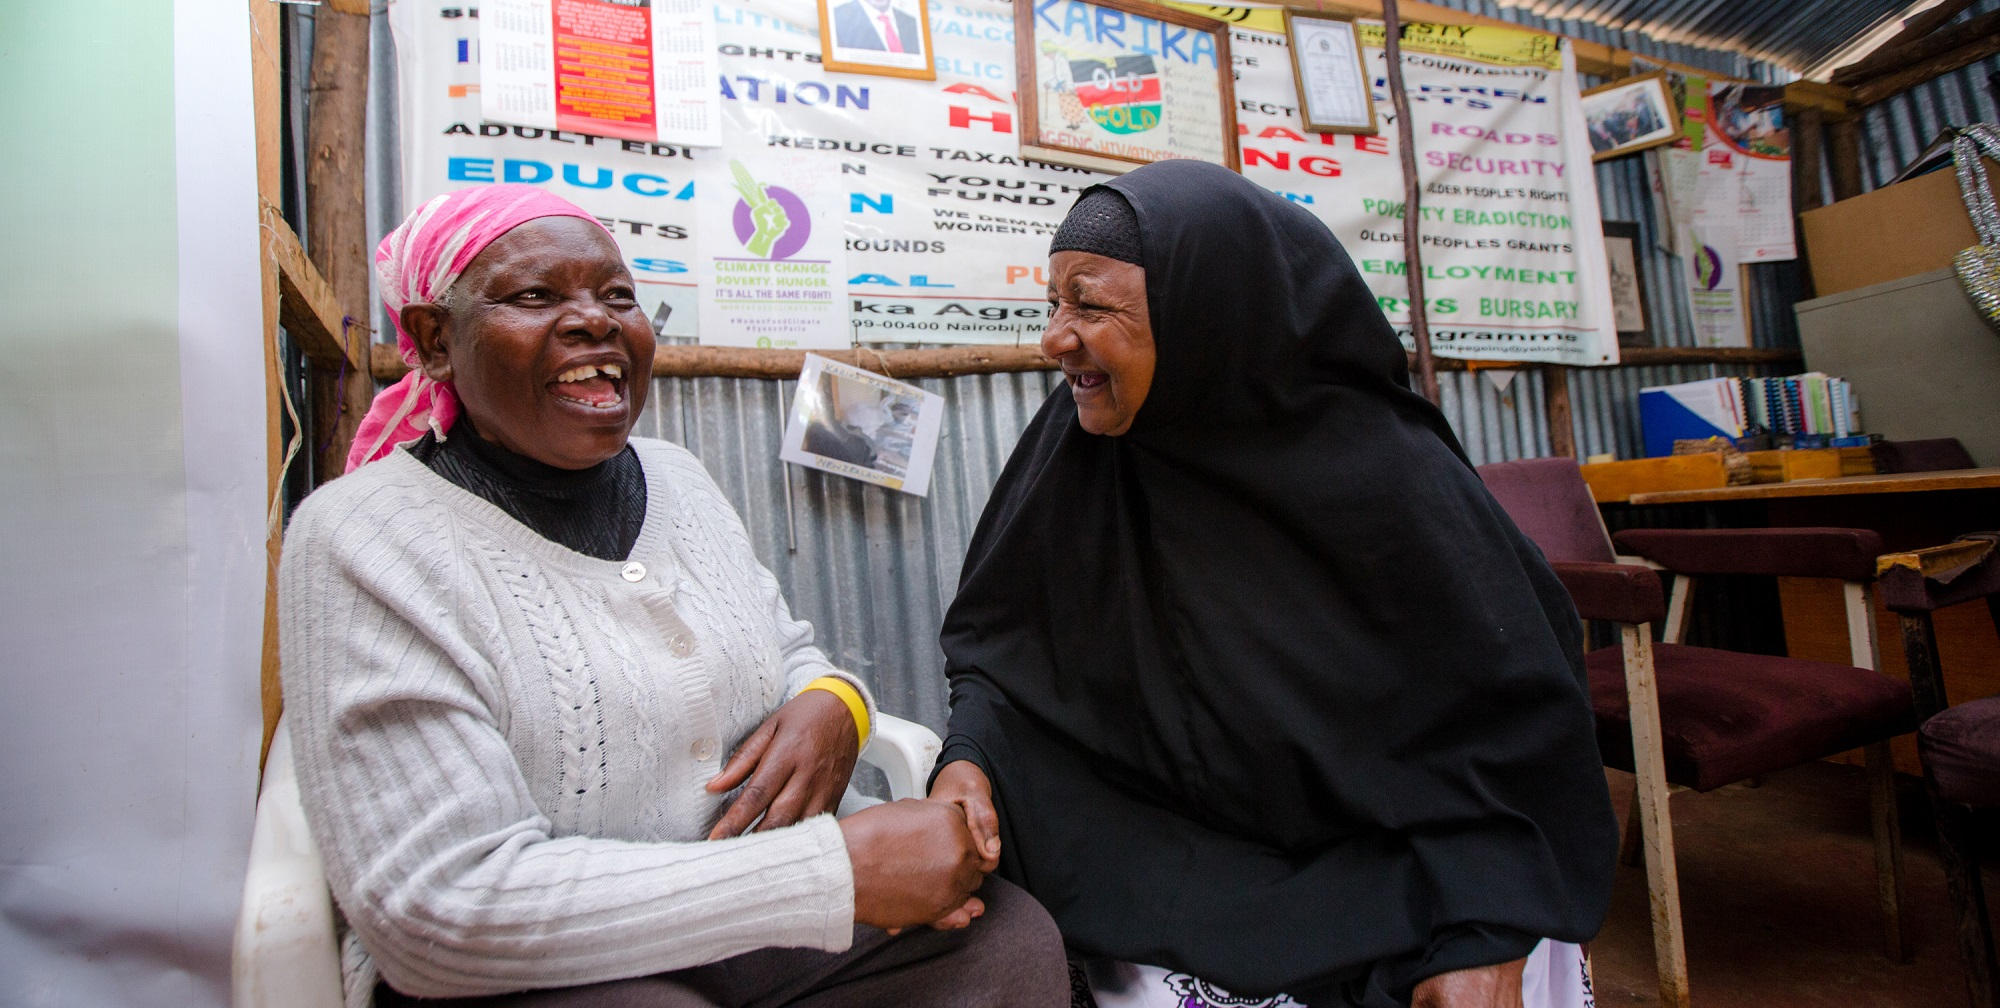 Gertrude and Zainab have both faced ageism where they live in Nairobi, Kenya (c) Mohamed Altoum/HelpAge International